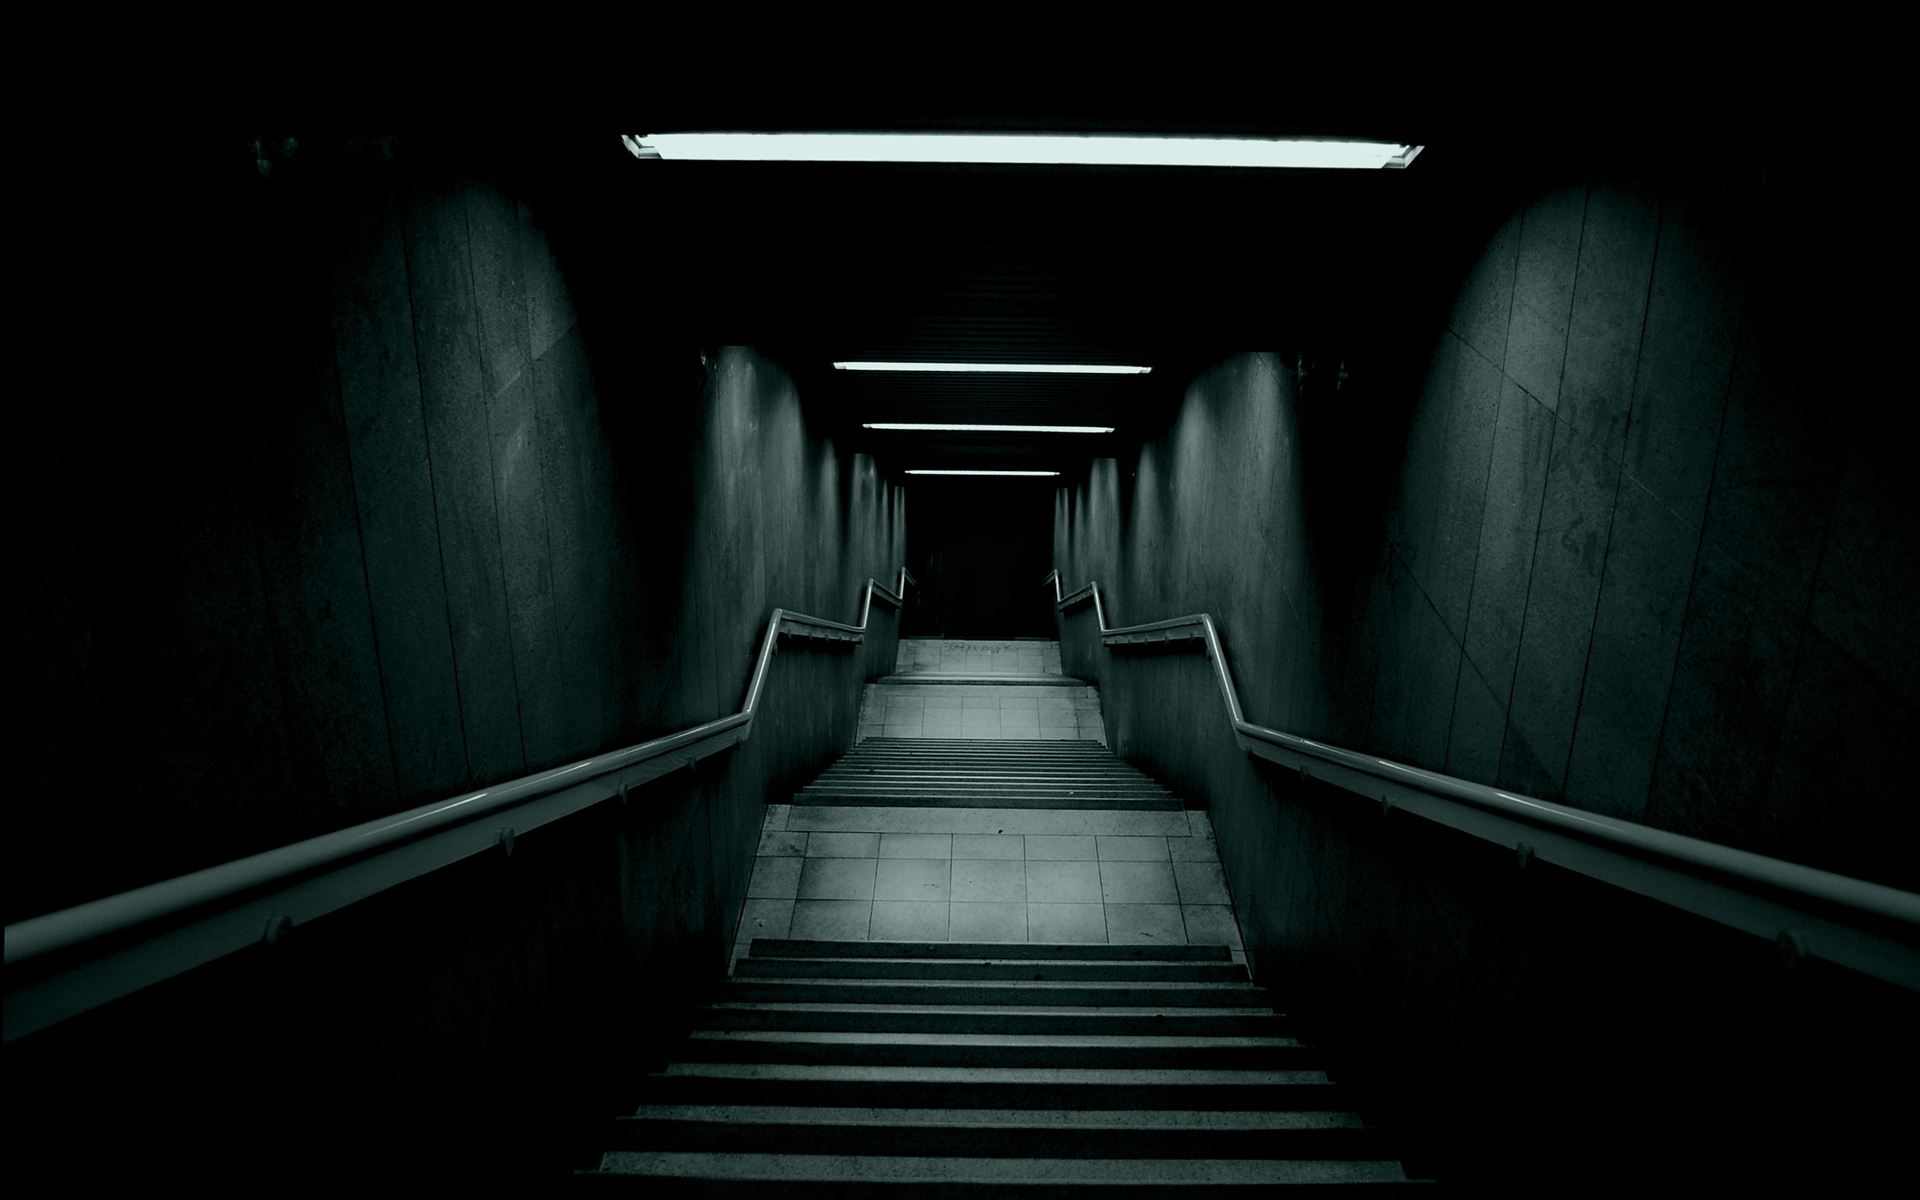 Stare Into the Abyss by LNePrZ, stairs, terror, chills, deep, dark, light, faint, fear, dark, white and black